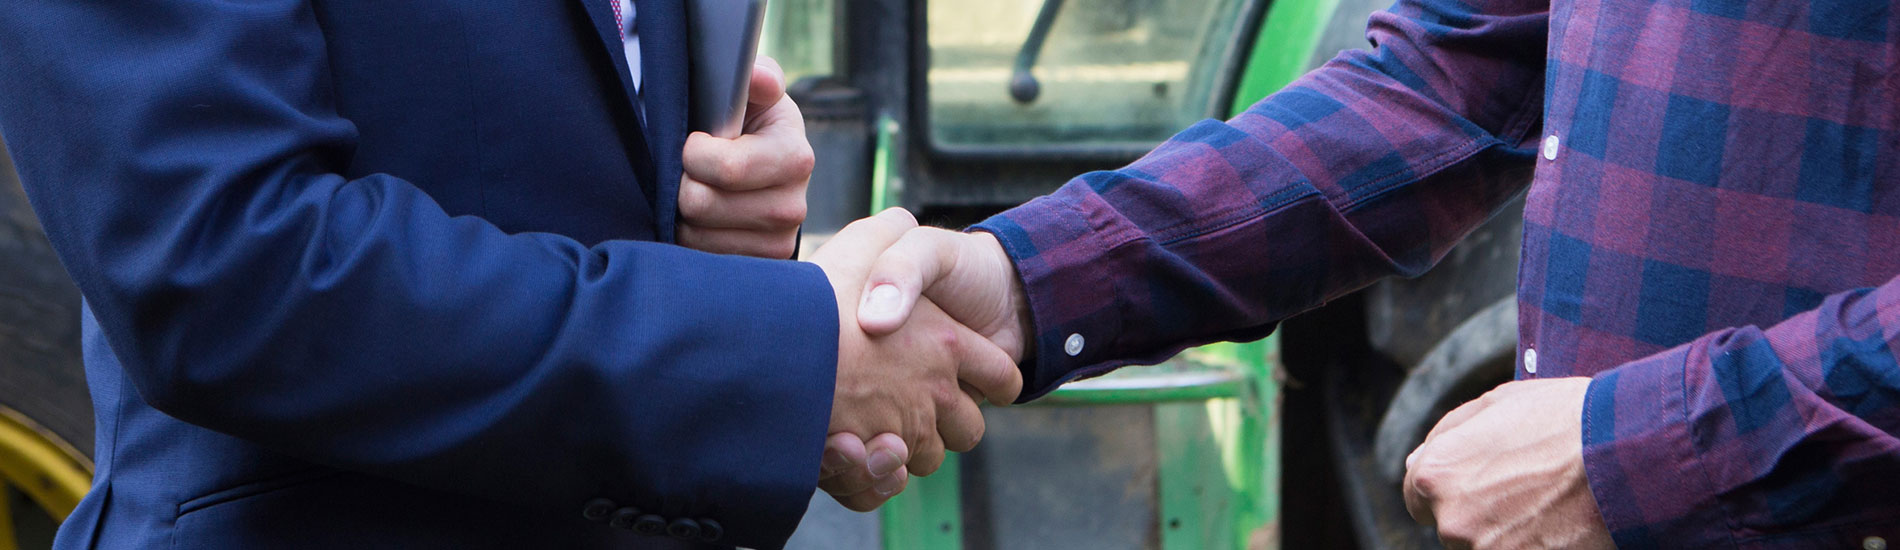 close-up of two men shaking hands